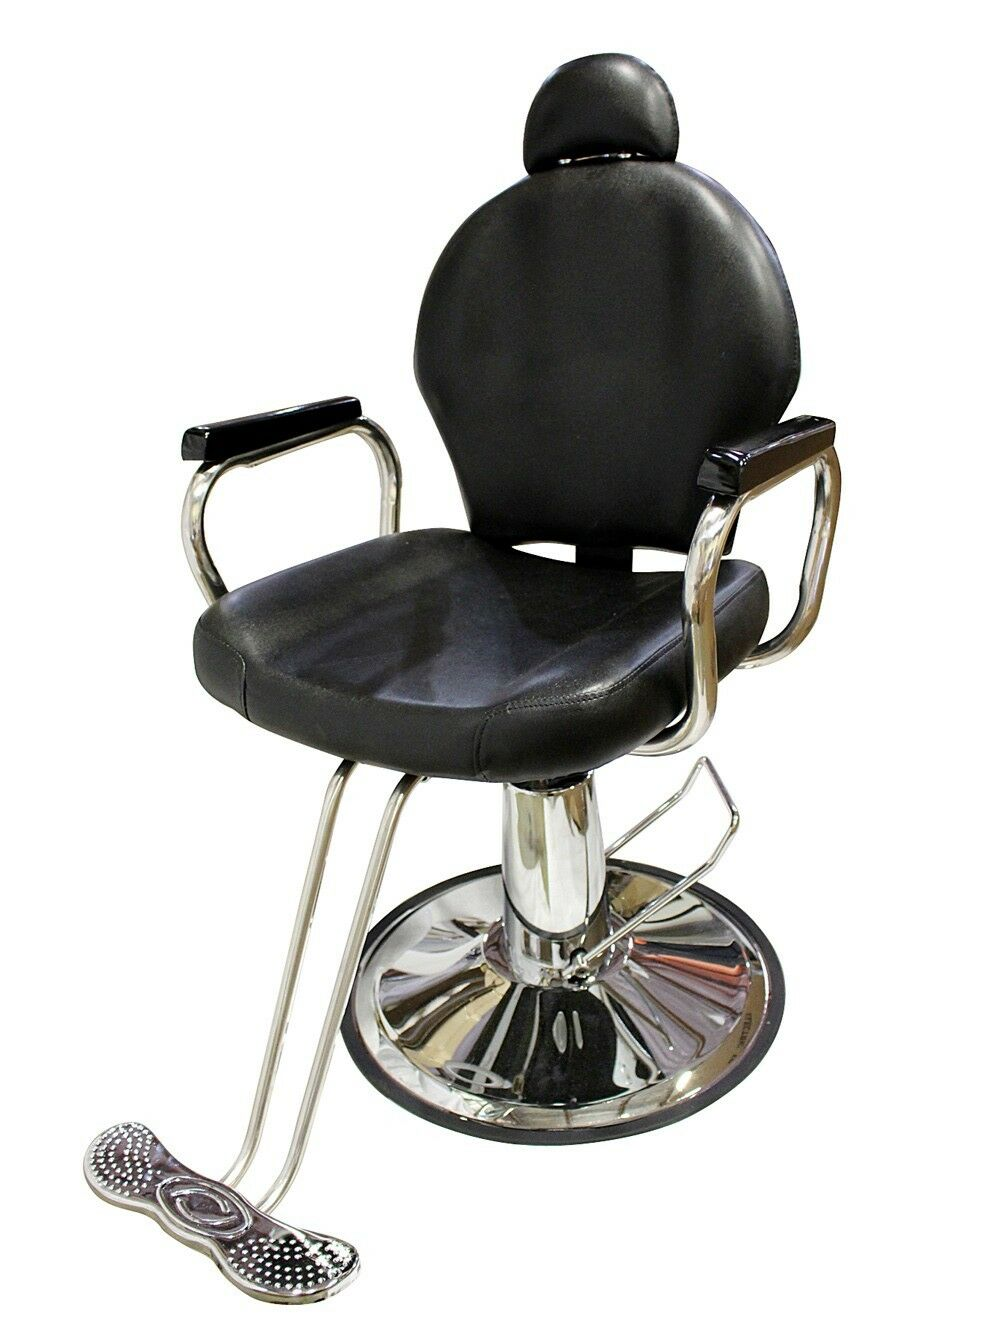 Hydraulic Barber Chair : All purpose reclining hydraulic barber chair salon beauty